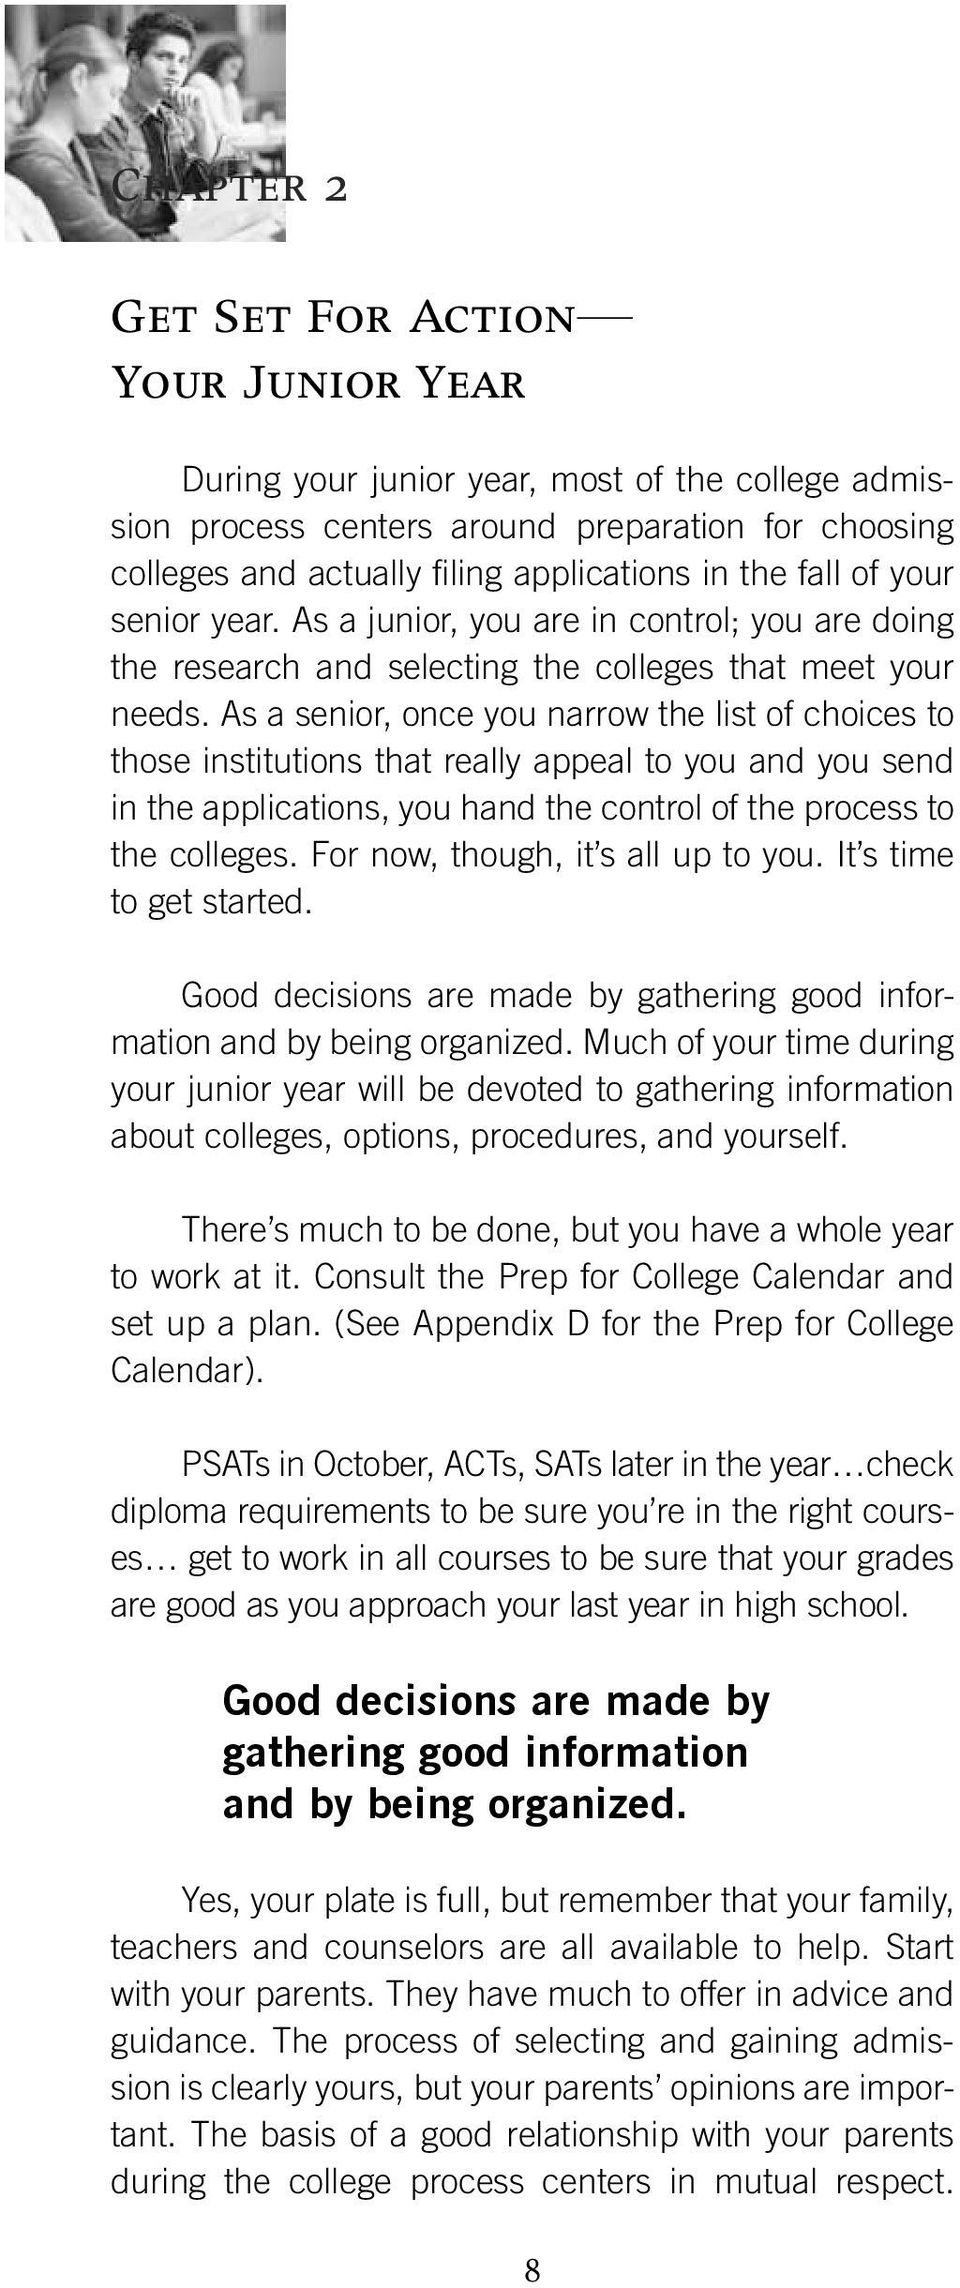 As a senior, once you narrow the list of choices to those institutions that really appeal to you and you send in the applications, you hand the control of the process to the colleges.